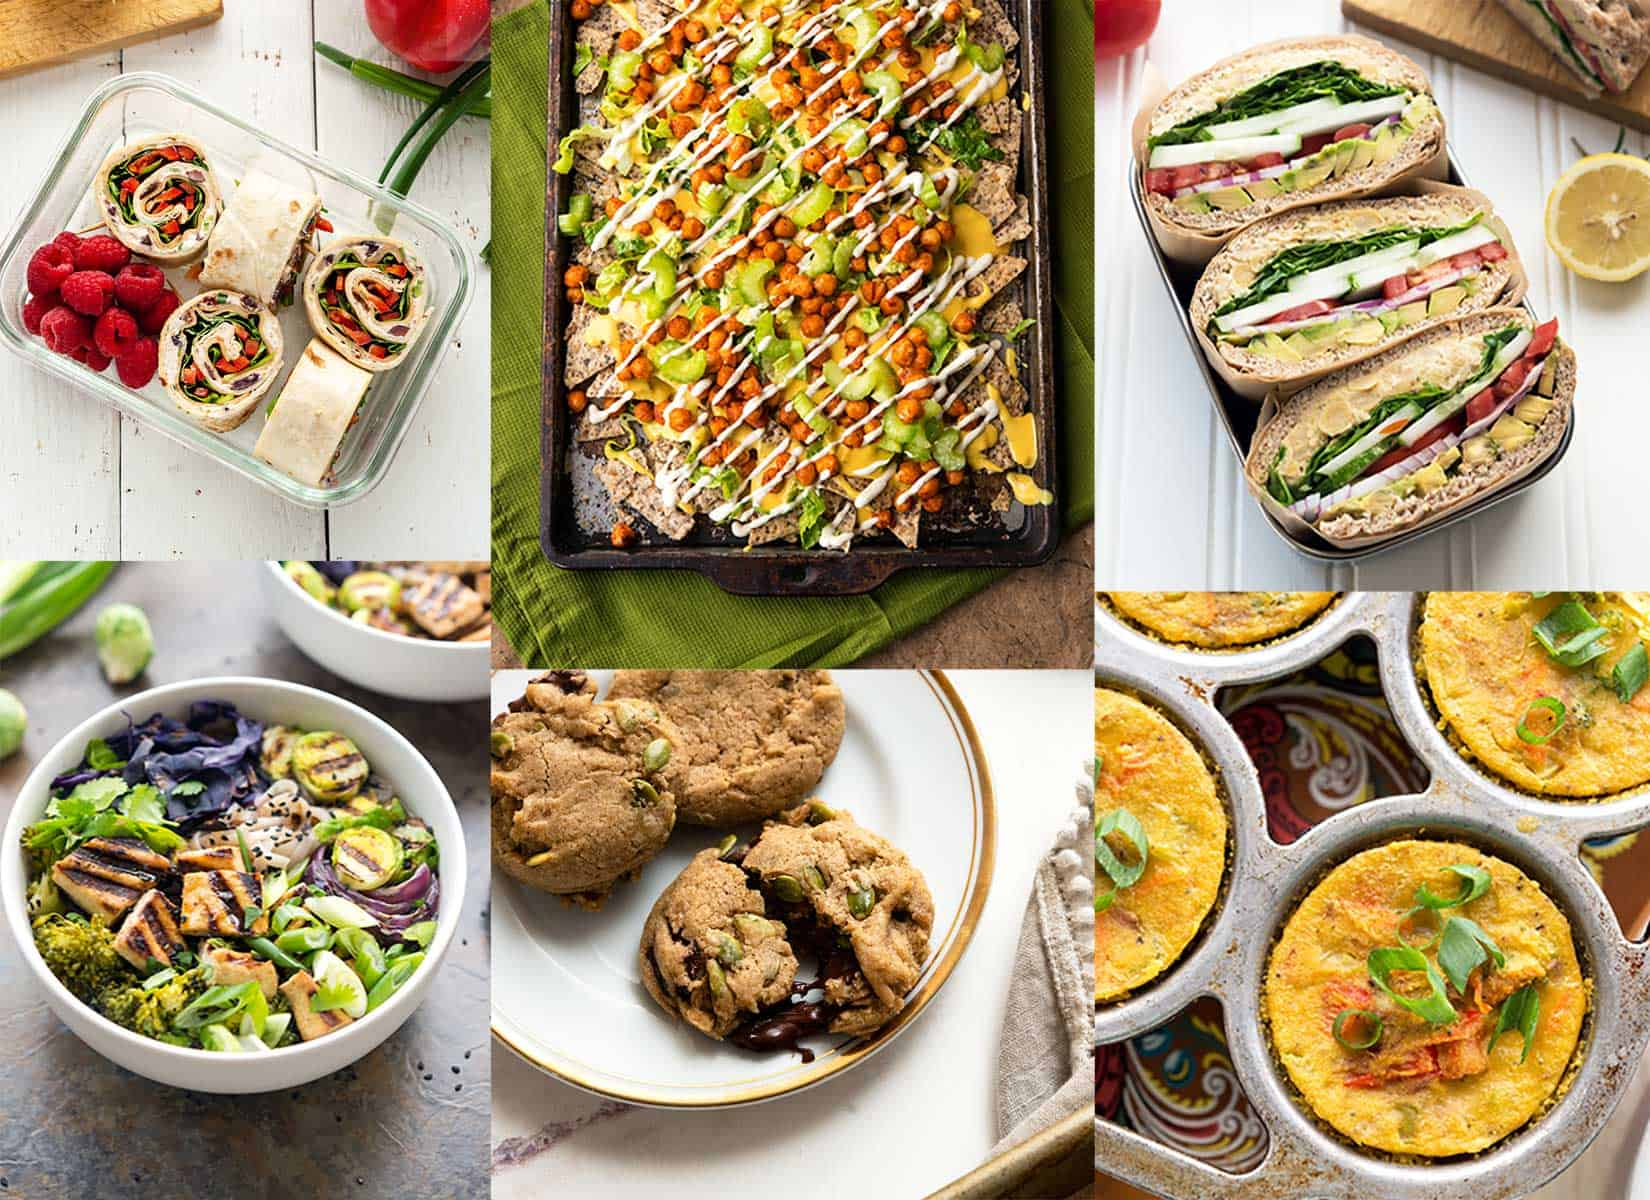 Image collage of several easy vegan recipes, like nachos, cookies, sandwiches and soup